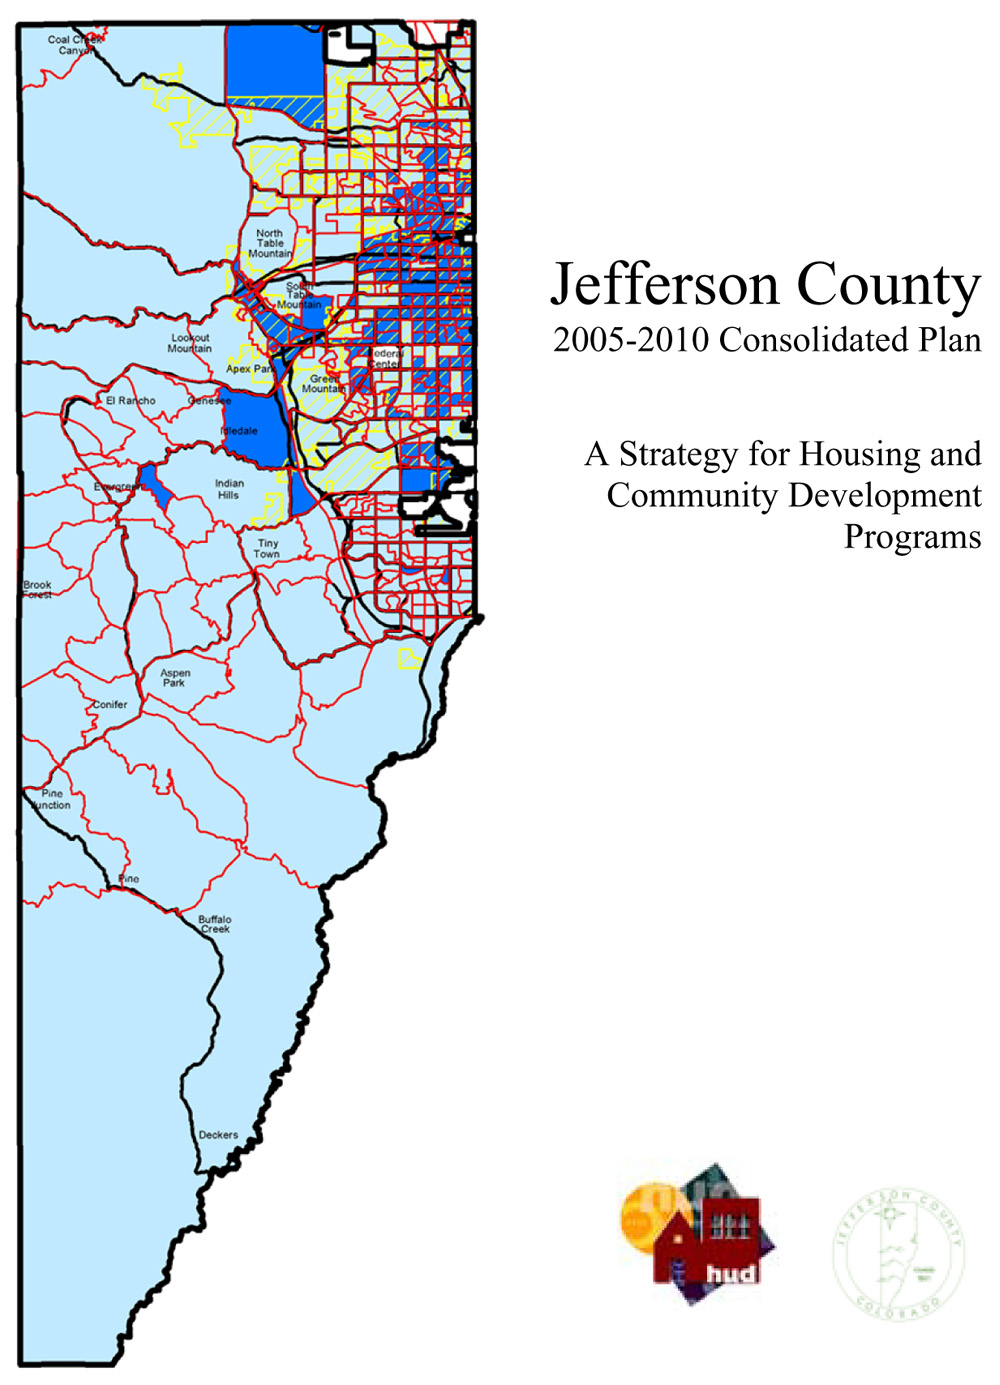 2005_2010_con_plan_jefferson_county